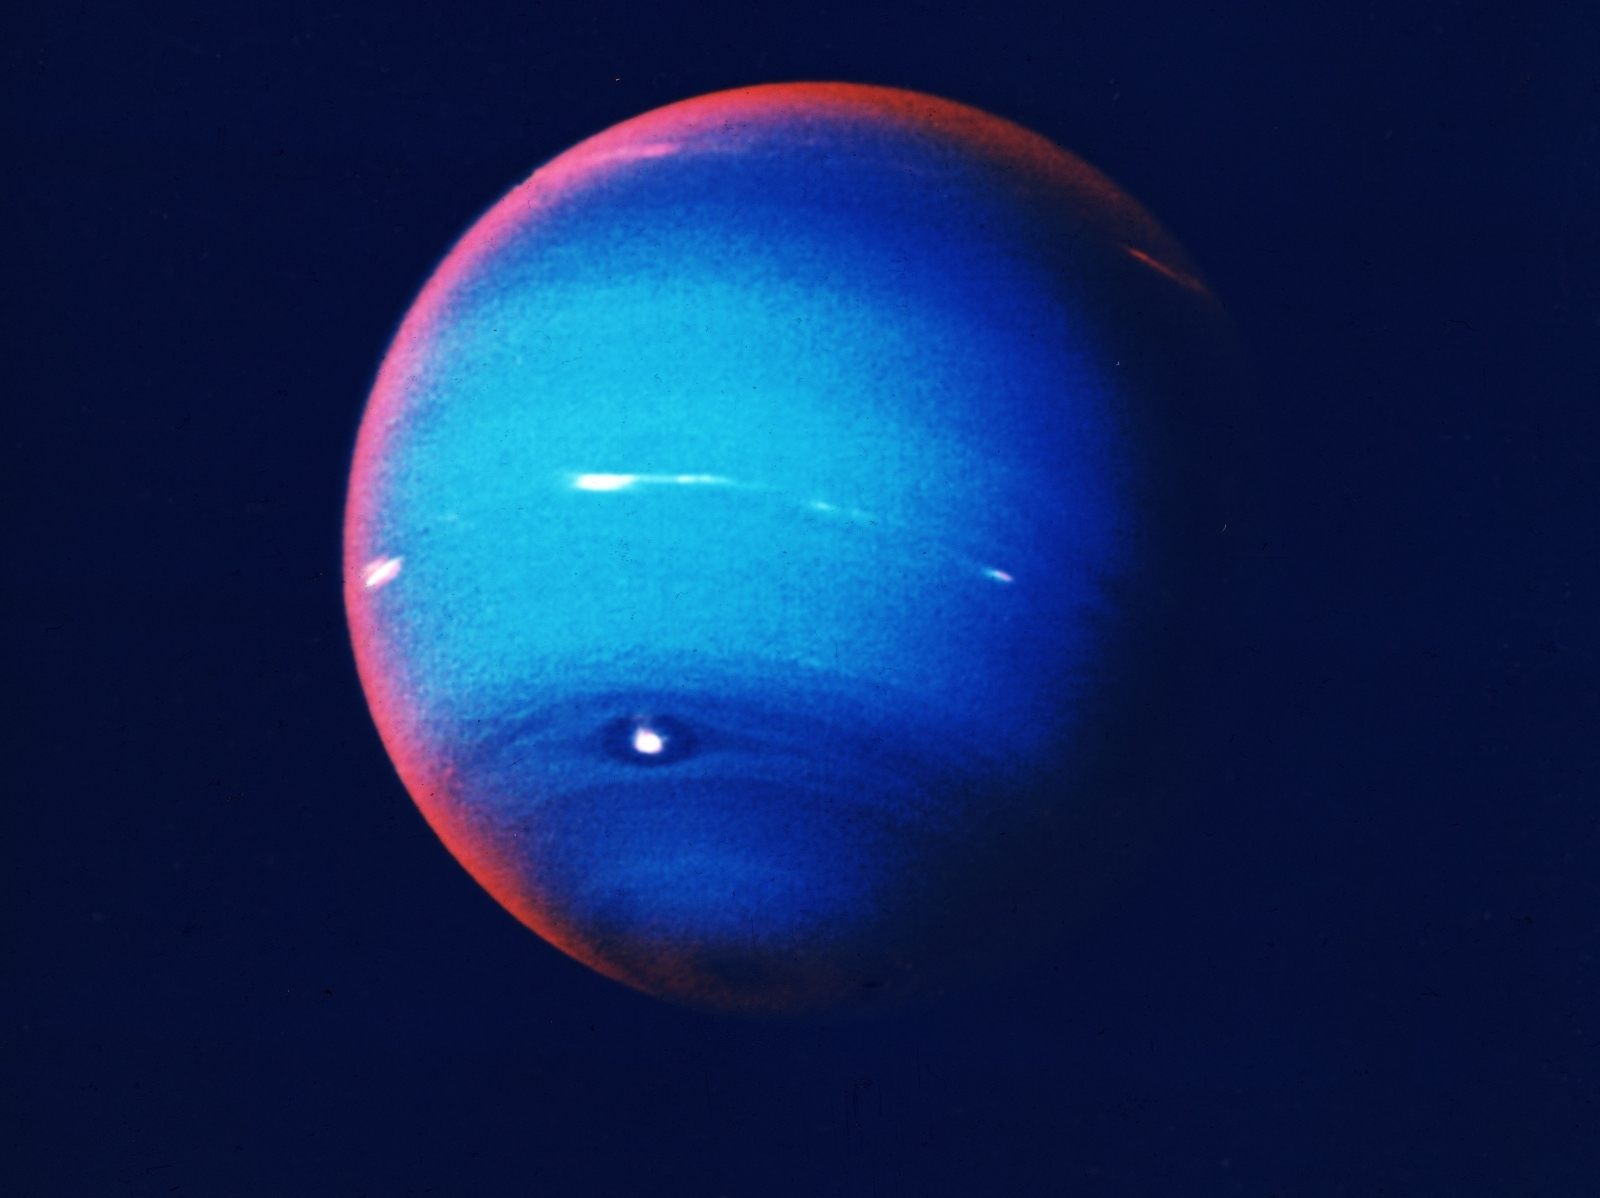 Hubble sees Neptune's mysterious shrinking storm